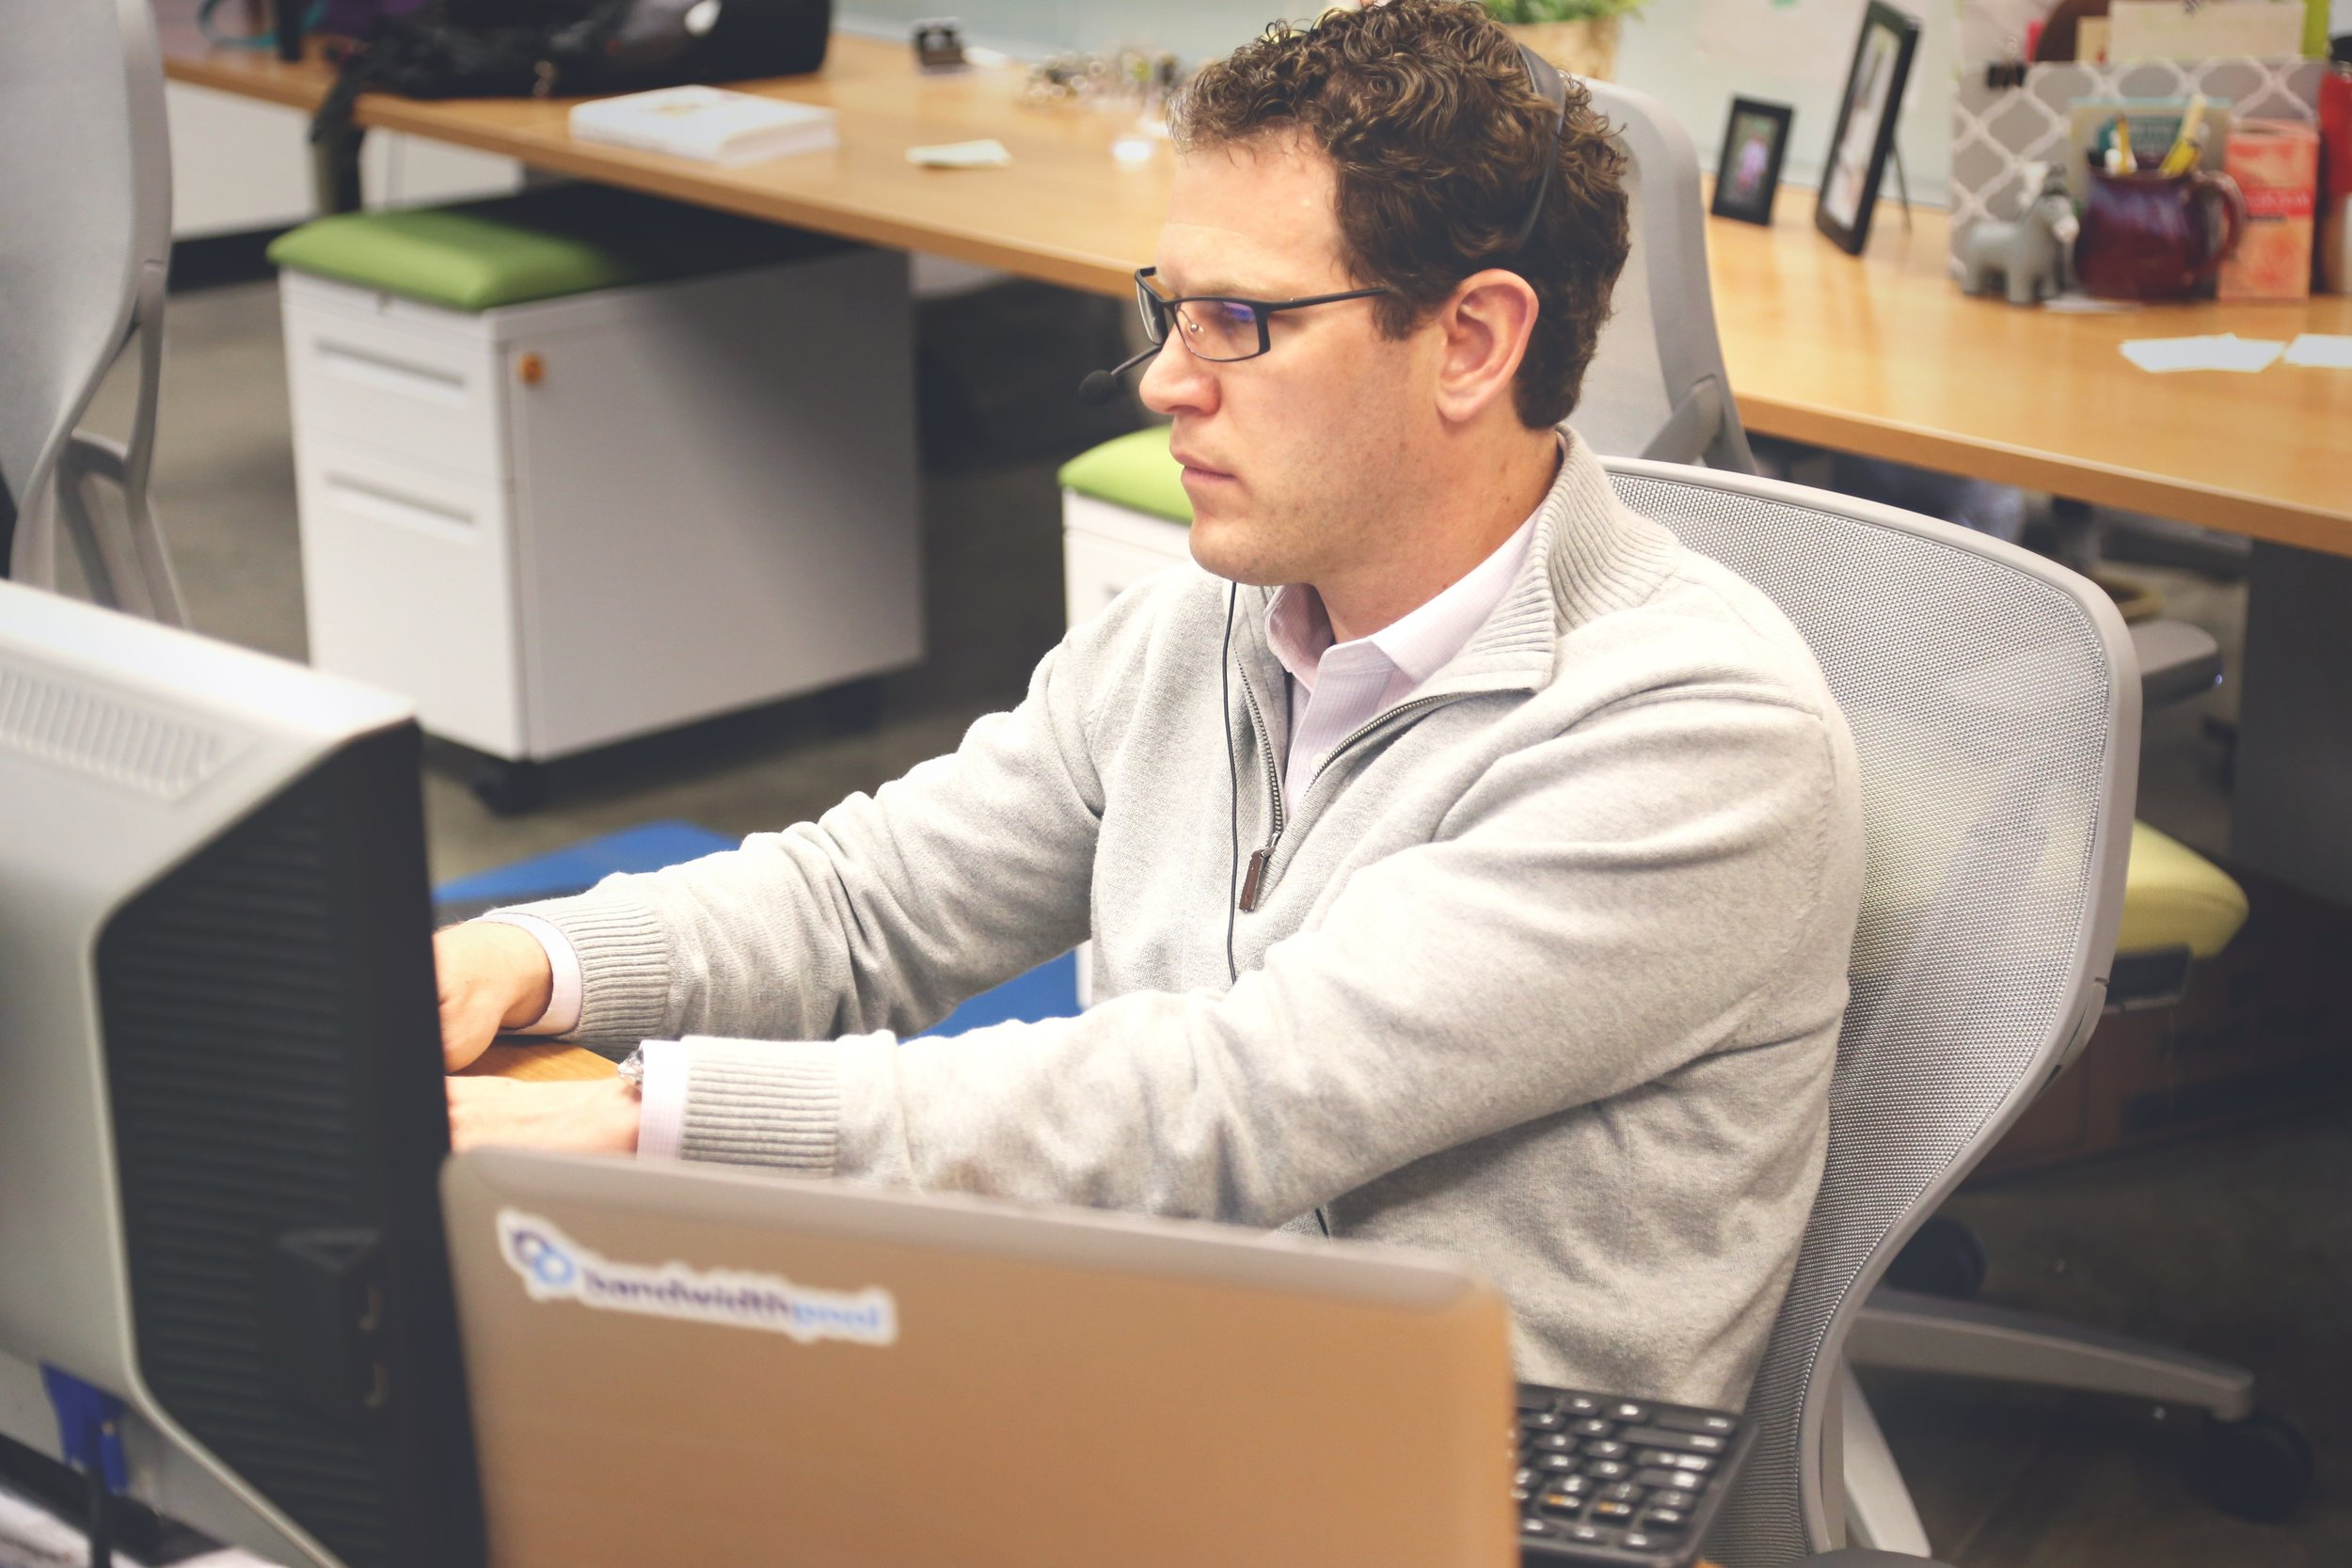 Man in office at computer working